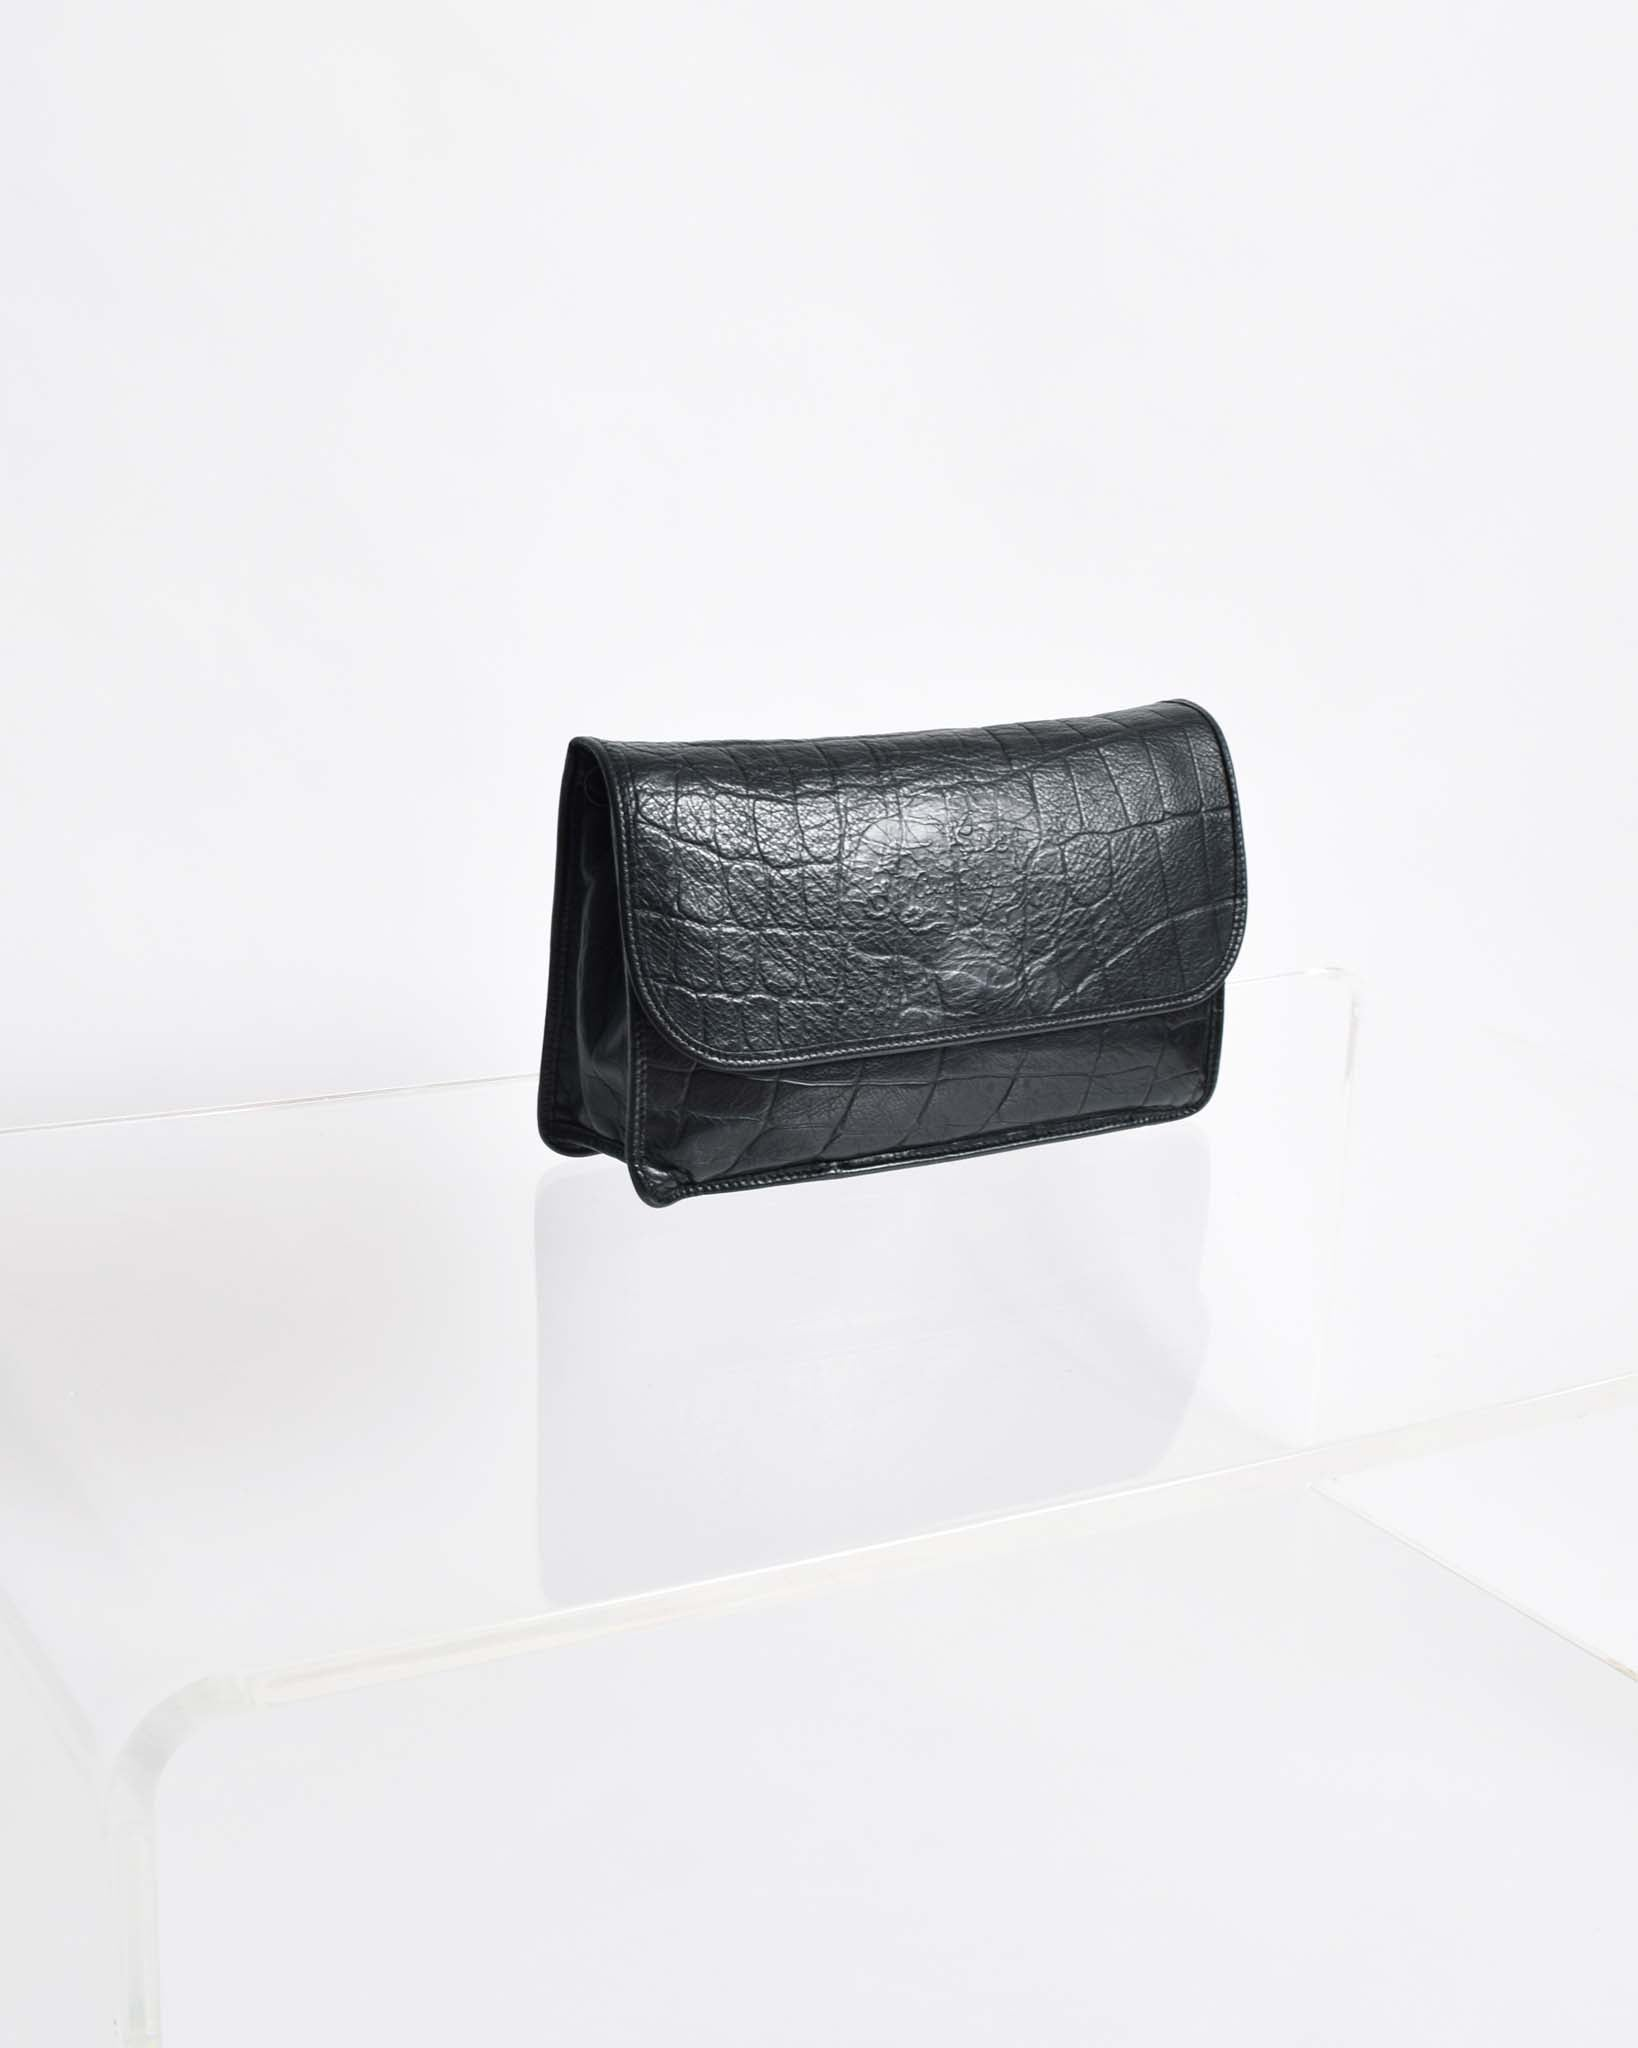 Vintage Carlos Falchi Black Leather Purse